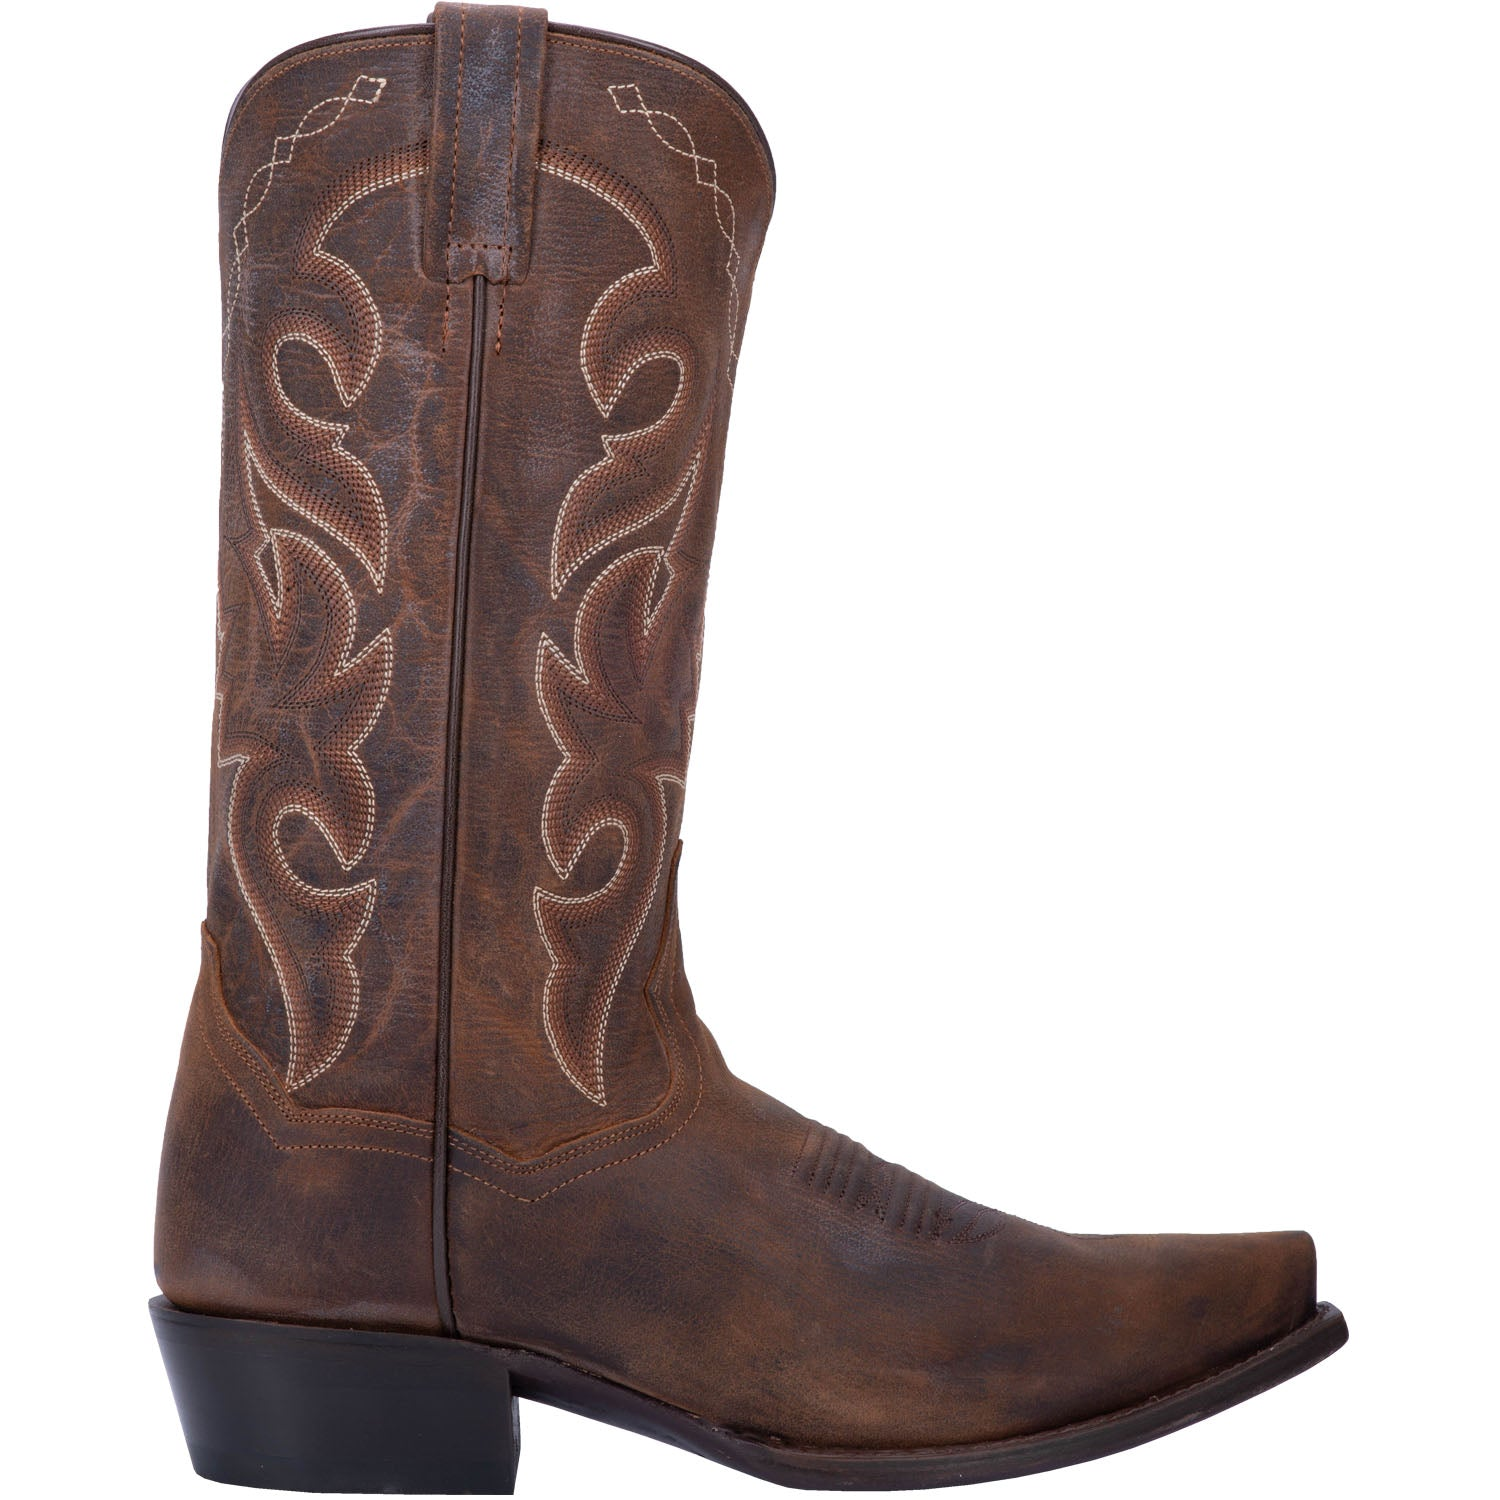 RENEGADE S LEATHER BOOT 4254110220330